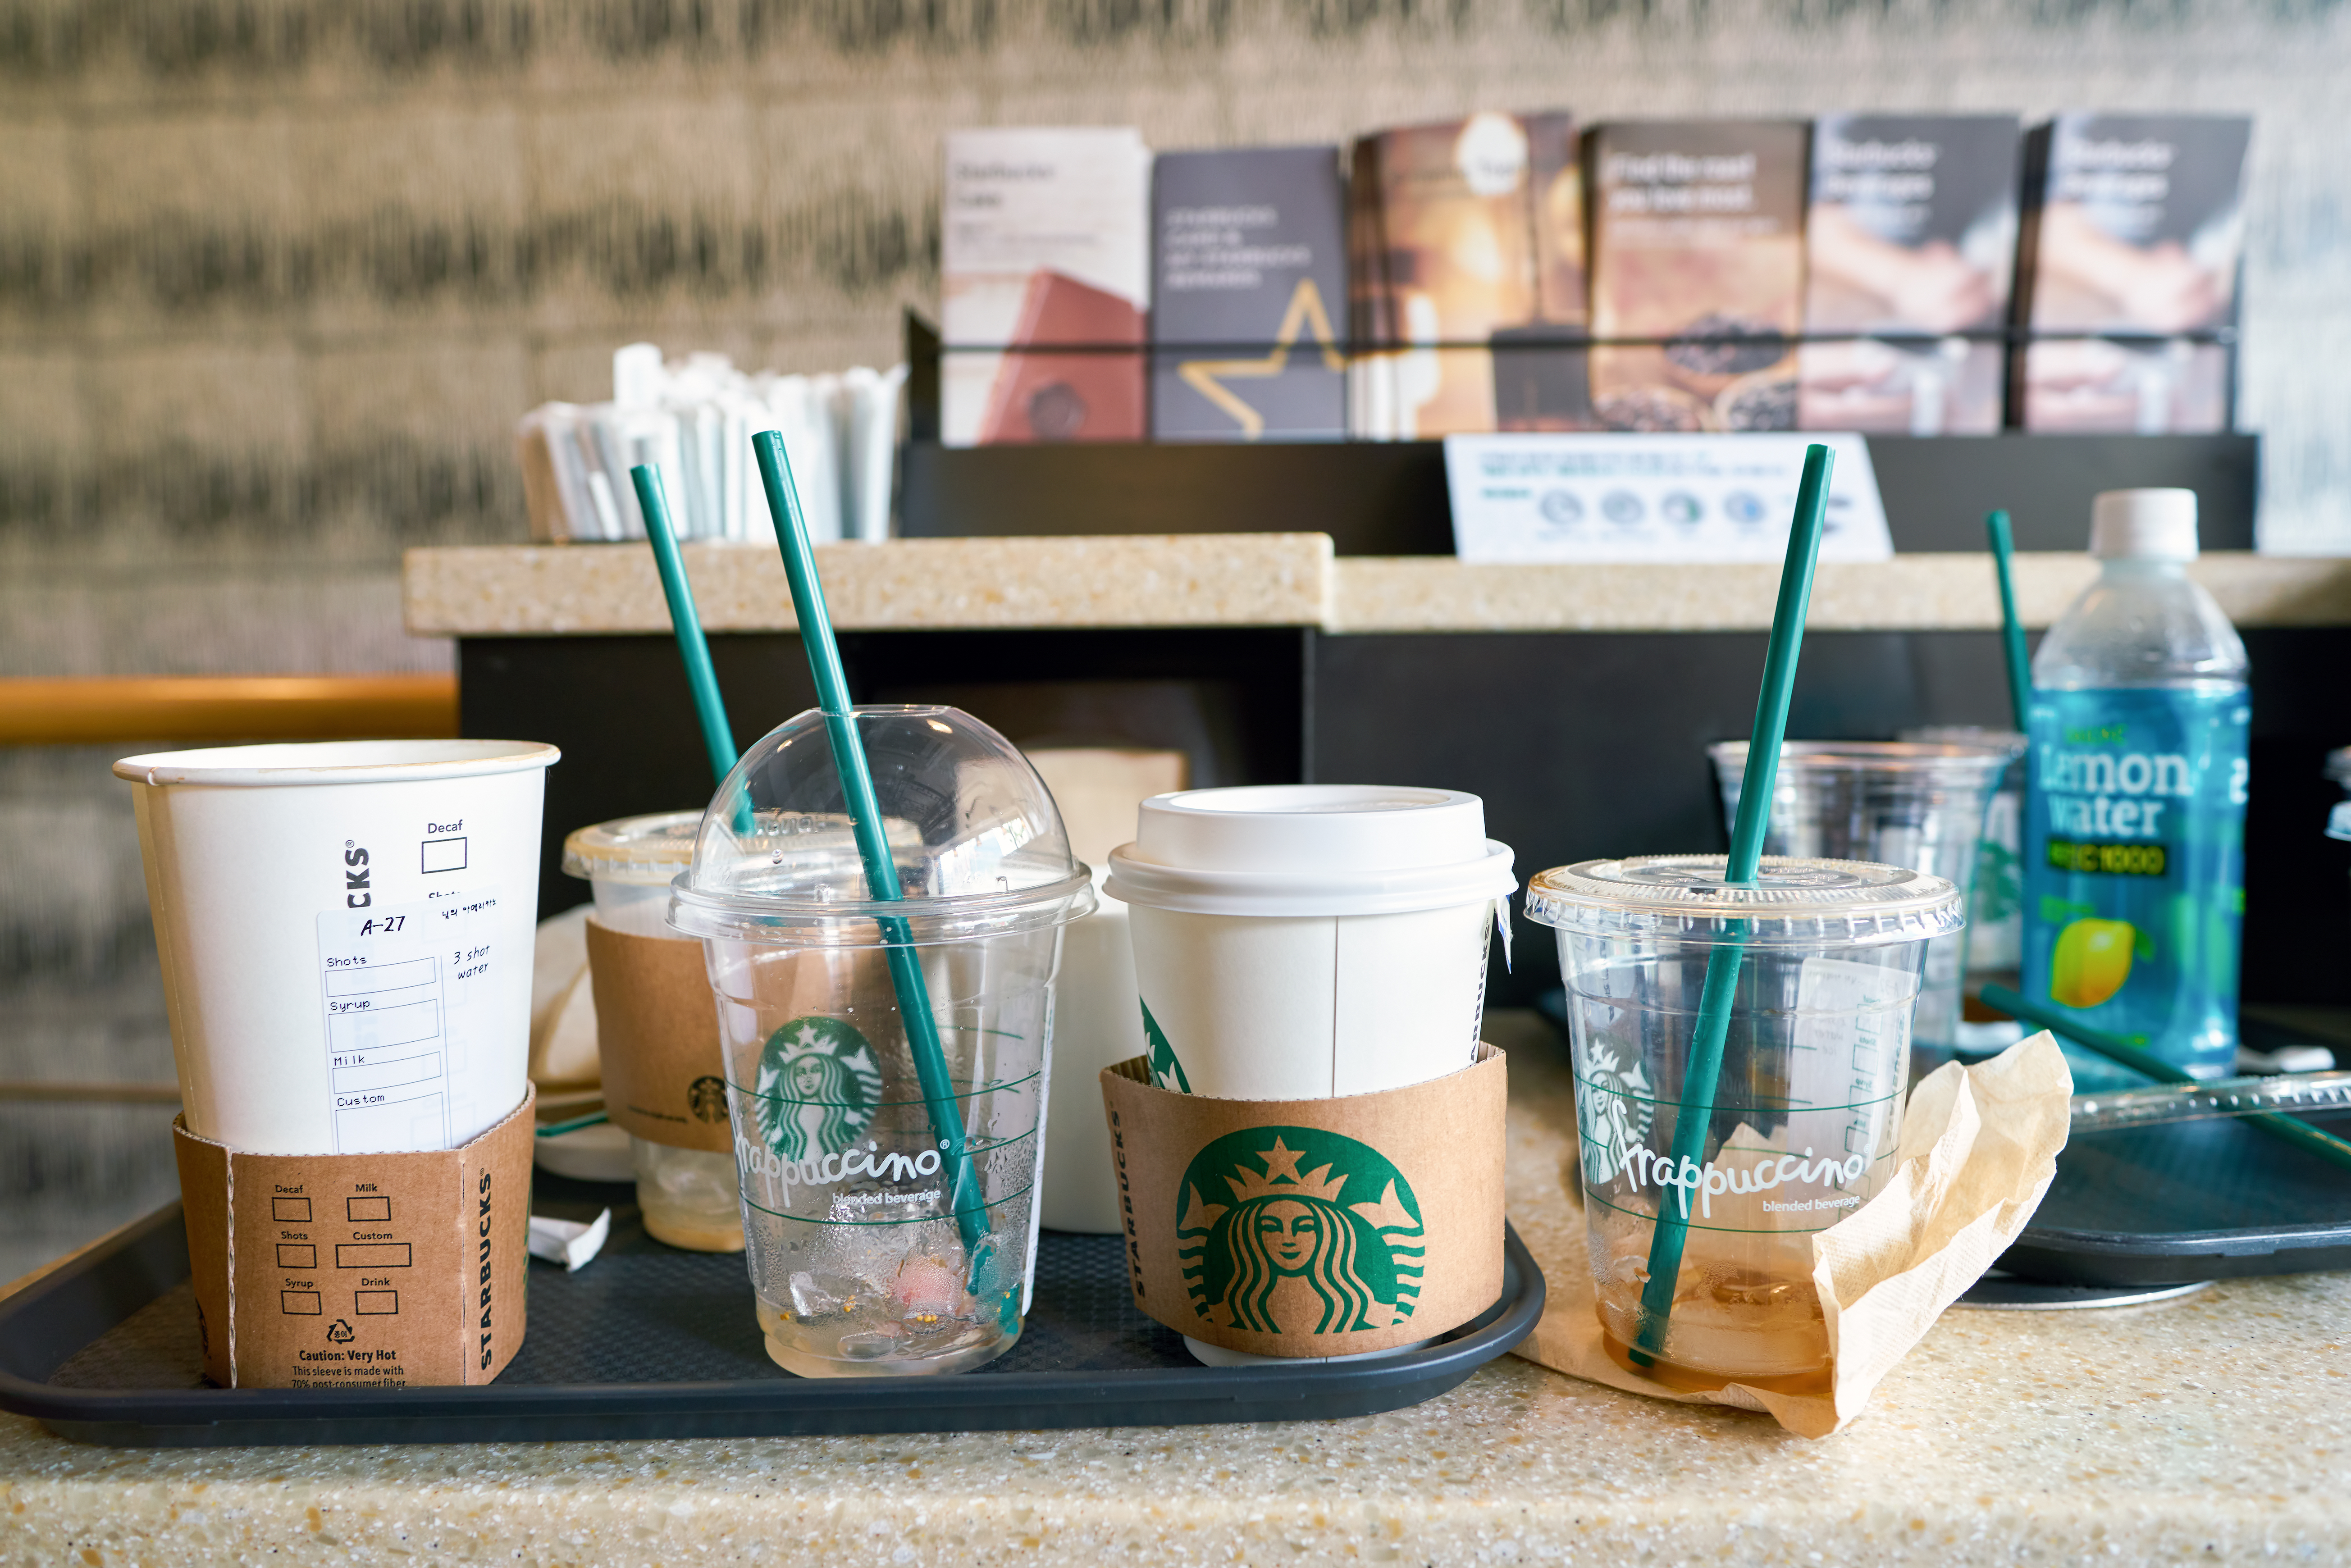 Discarded, empty plastic Starbucks cups on a tray.